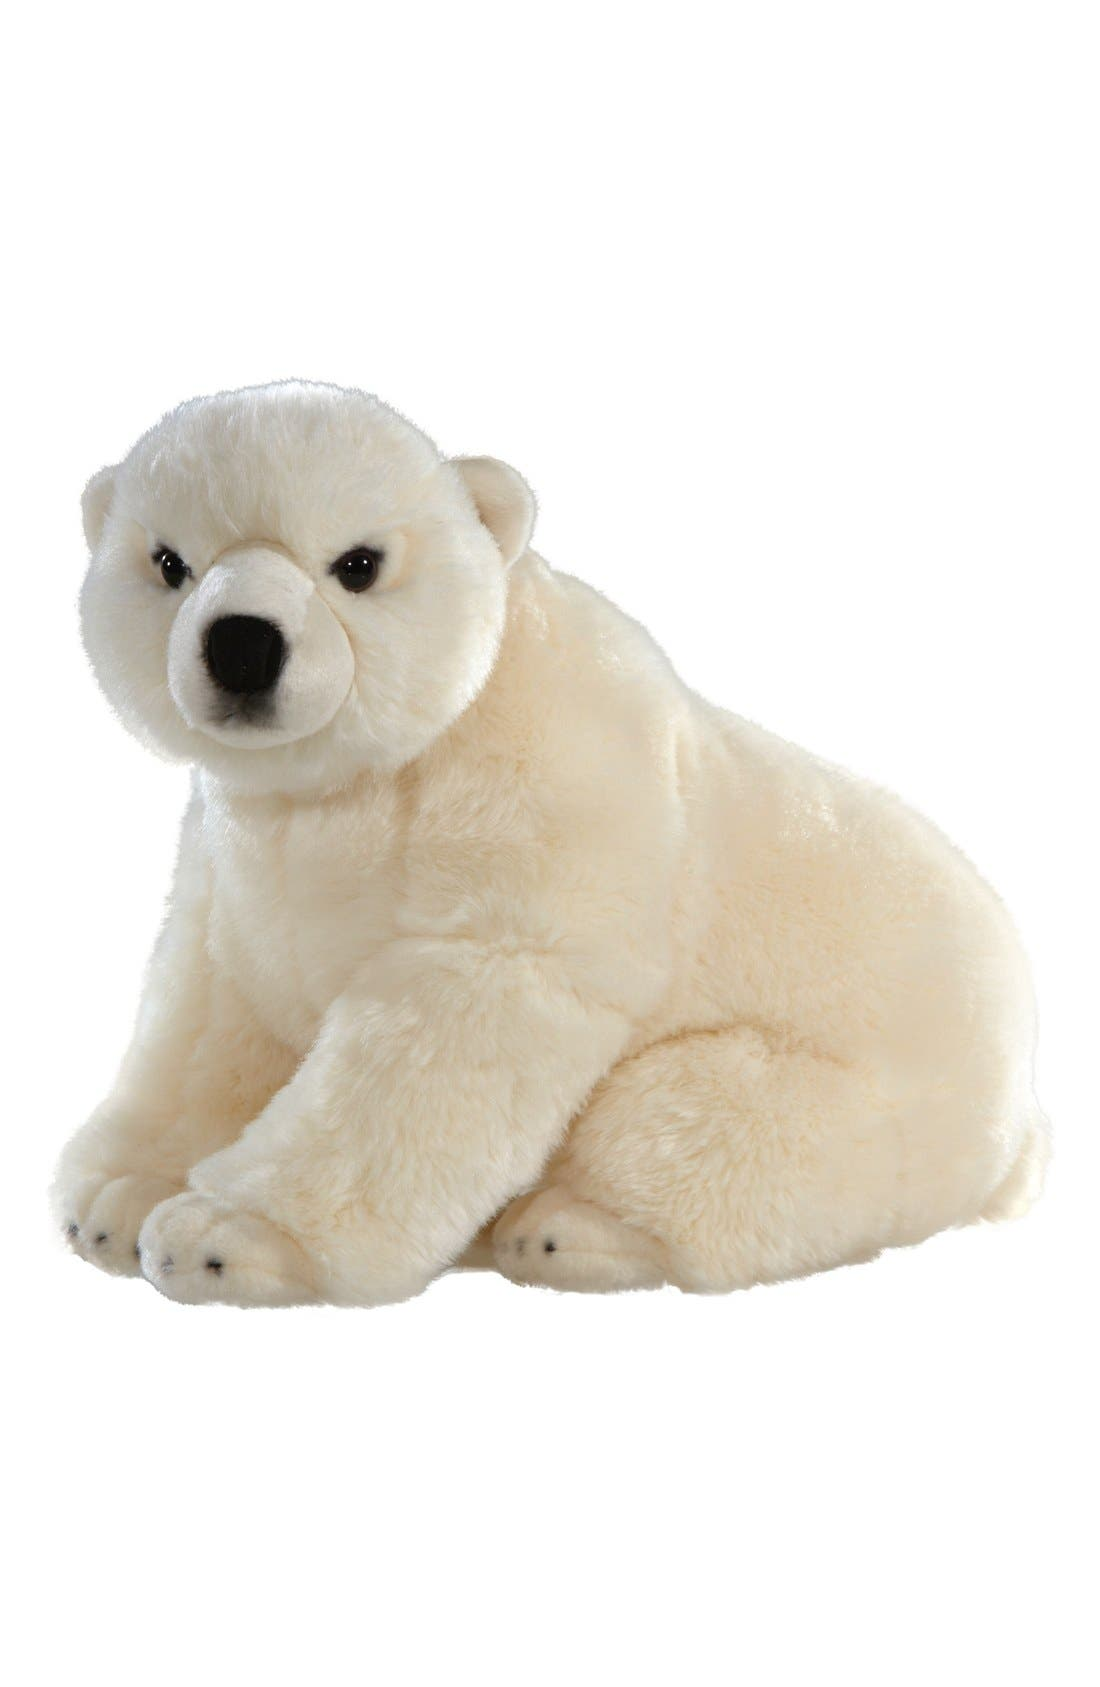 Alternate Image 1 Selected - Aurora World Toys 'Signature Series - Polar Bear' Stuffed Animal